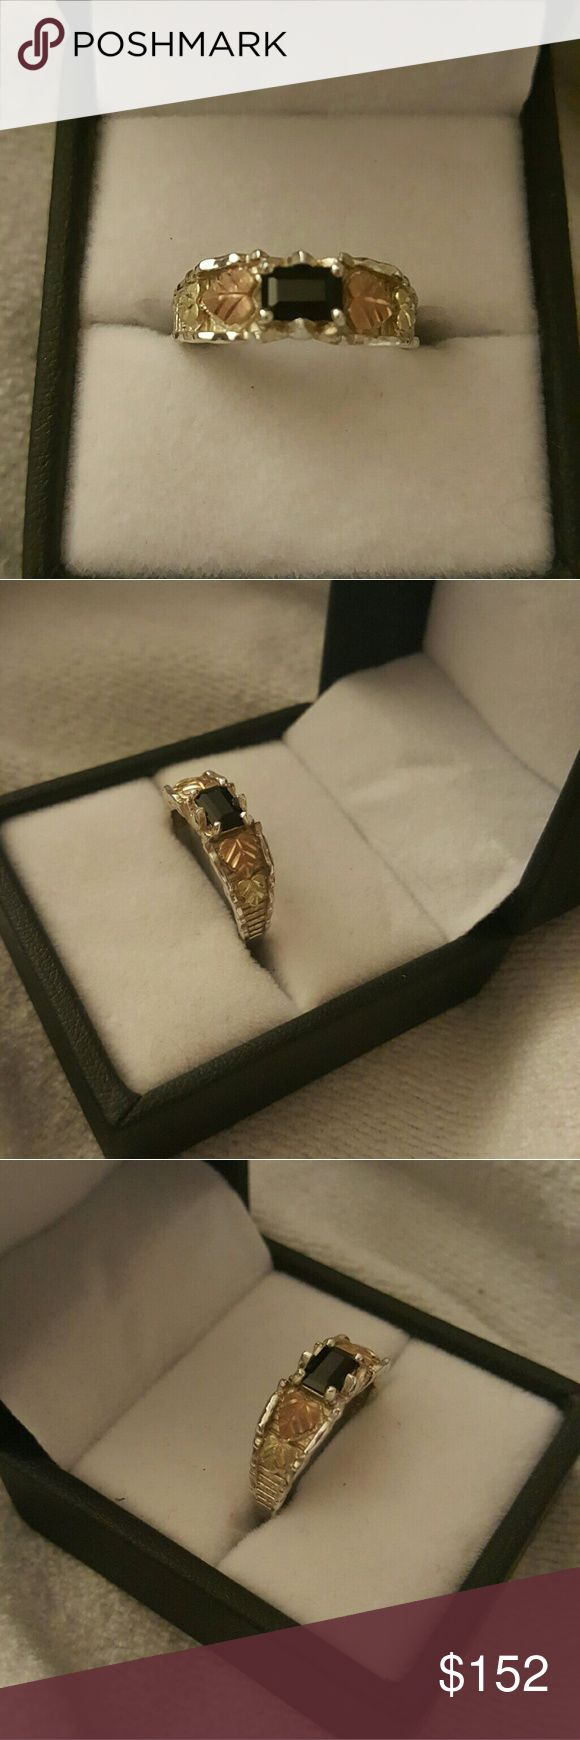 WOMENS BLACK ONIX BLACK HILLS GOLD RING BLACK HILLS GOLD 12K ONIX STERLING SILVER  WOMENS RING SZ 7.5 VERY BEAUTIFUL  HAVE A GIFT BOX GREAT GIFT FOR YOUR SELF OR SOME ONE SPECIAL Black hills gold  by coleman Jewelry Rings